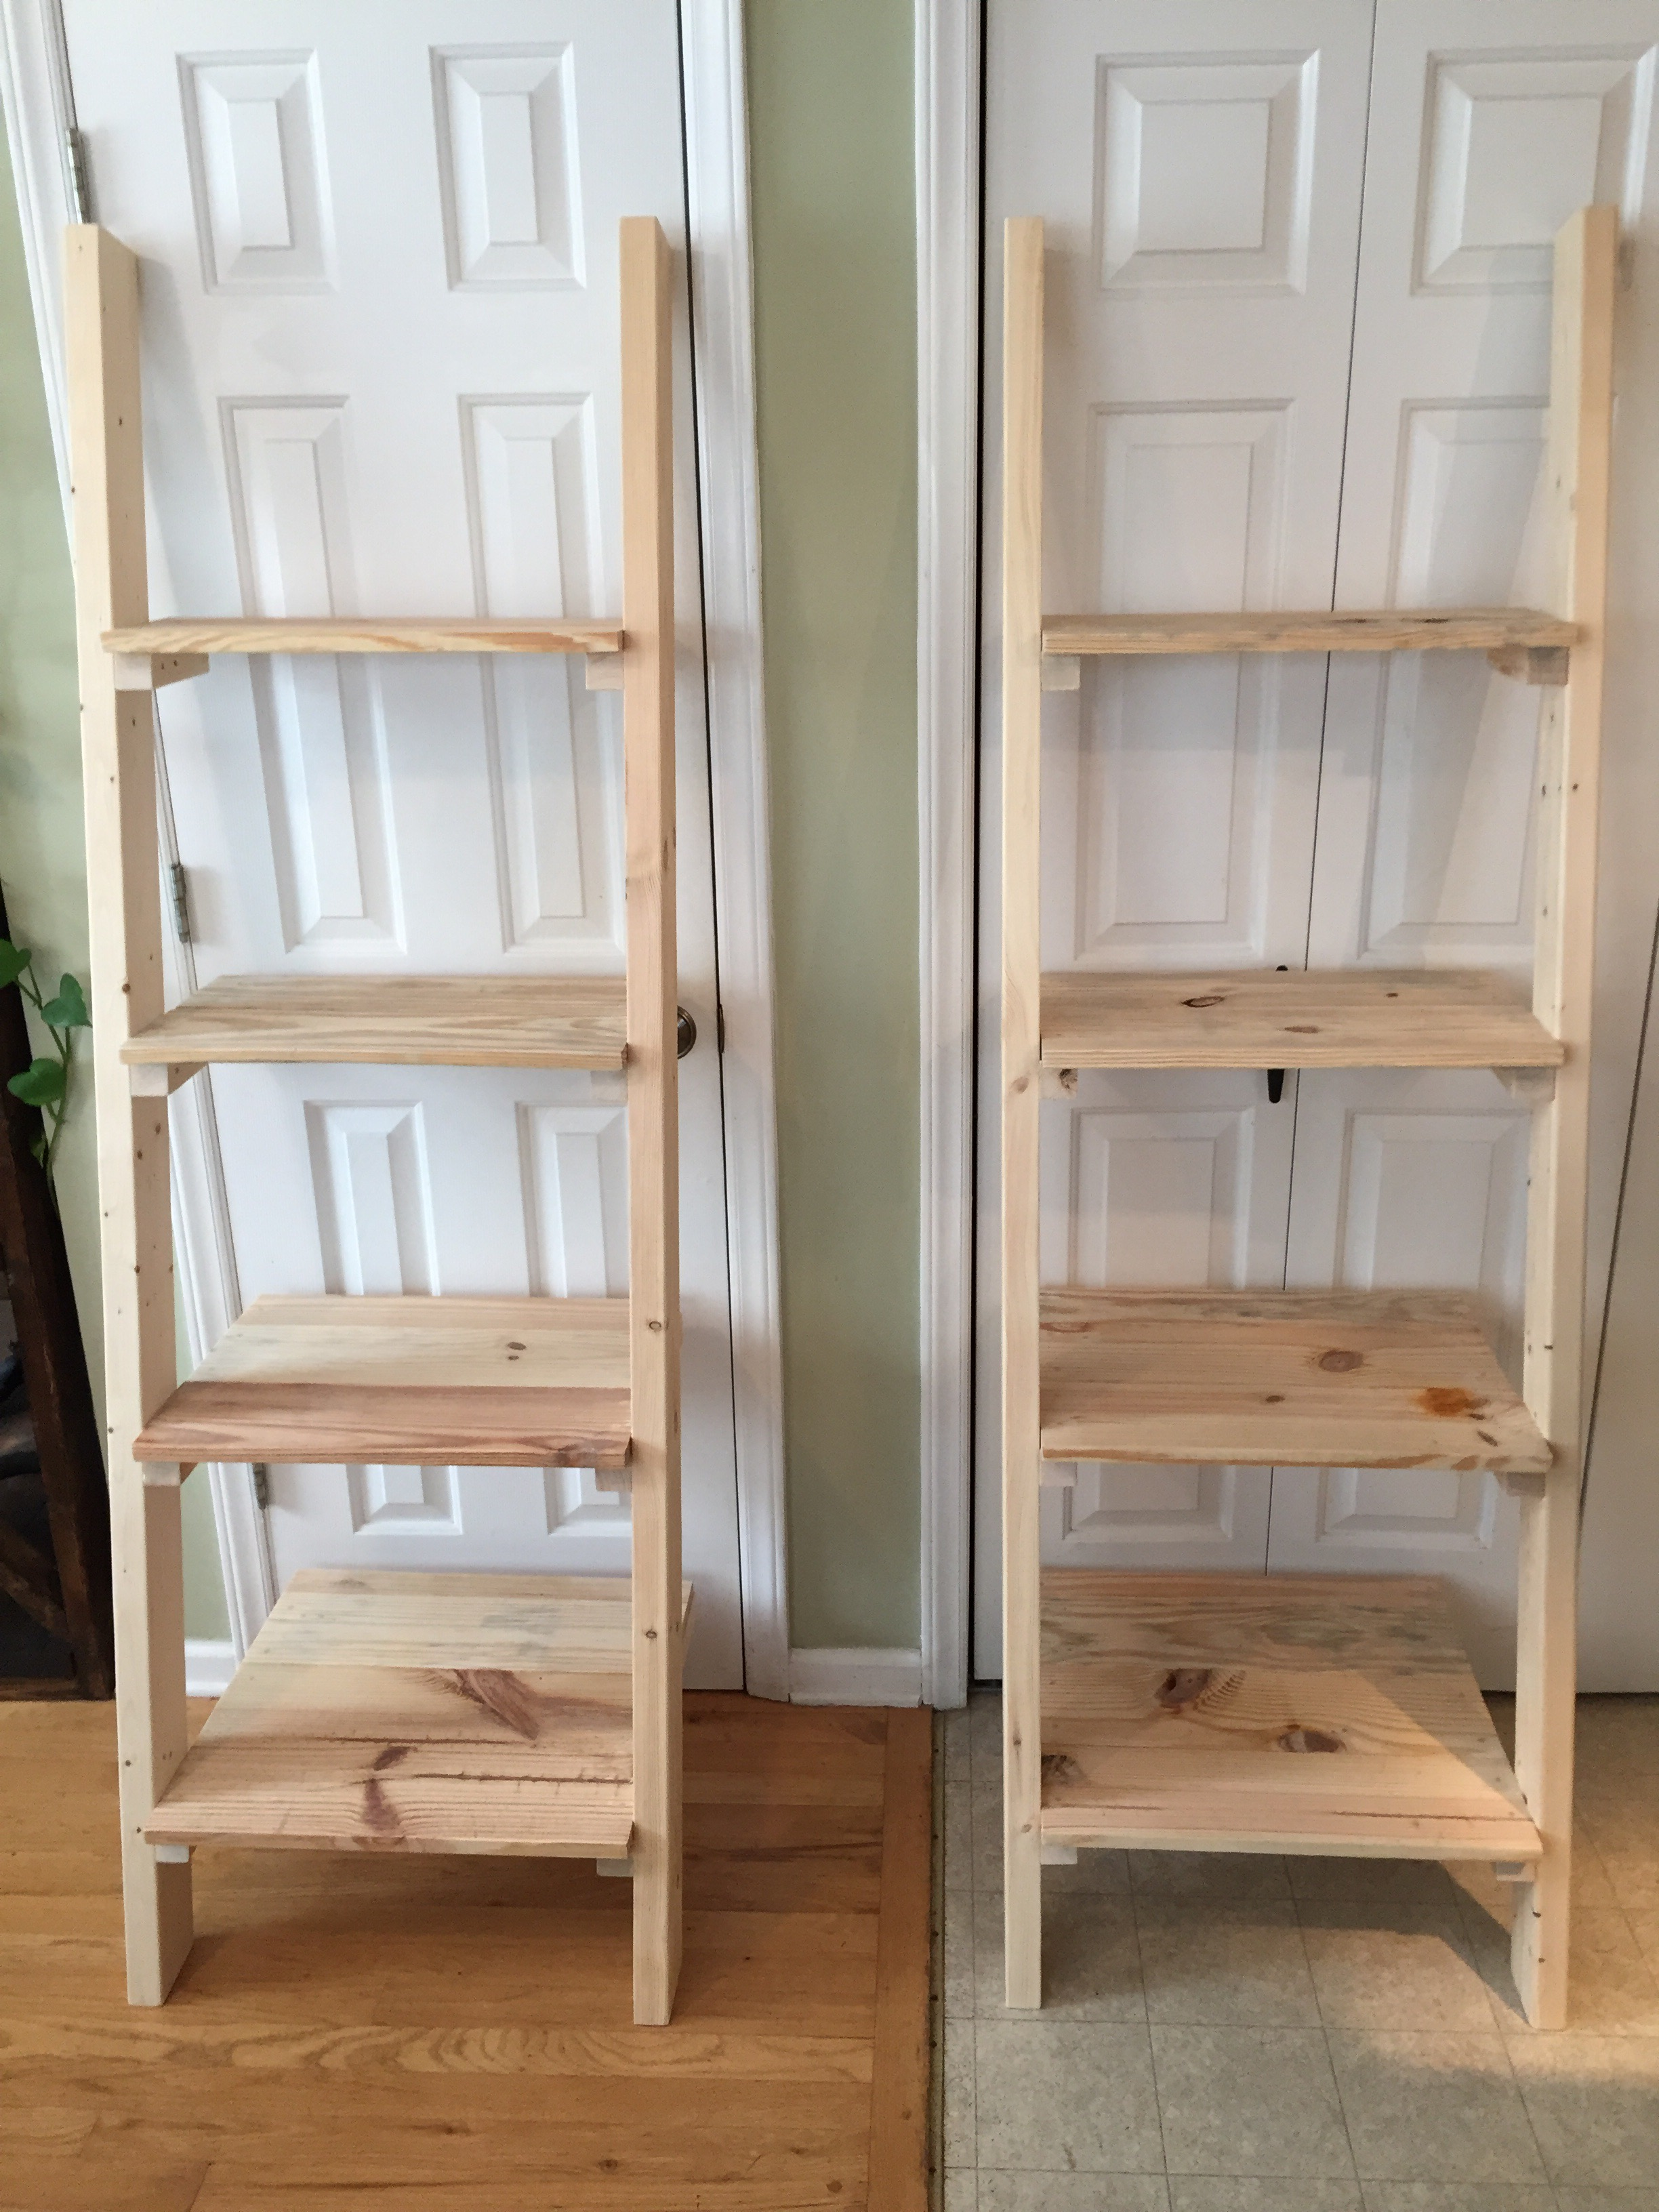 shelf tier amazon ca home ladder a view kitchen larger leaning adam wood dp frame winsome